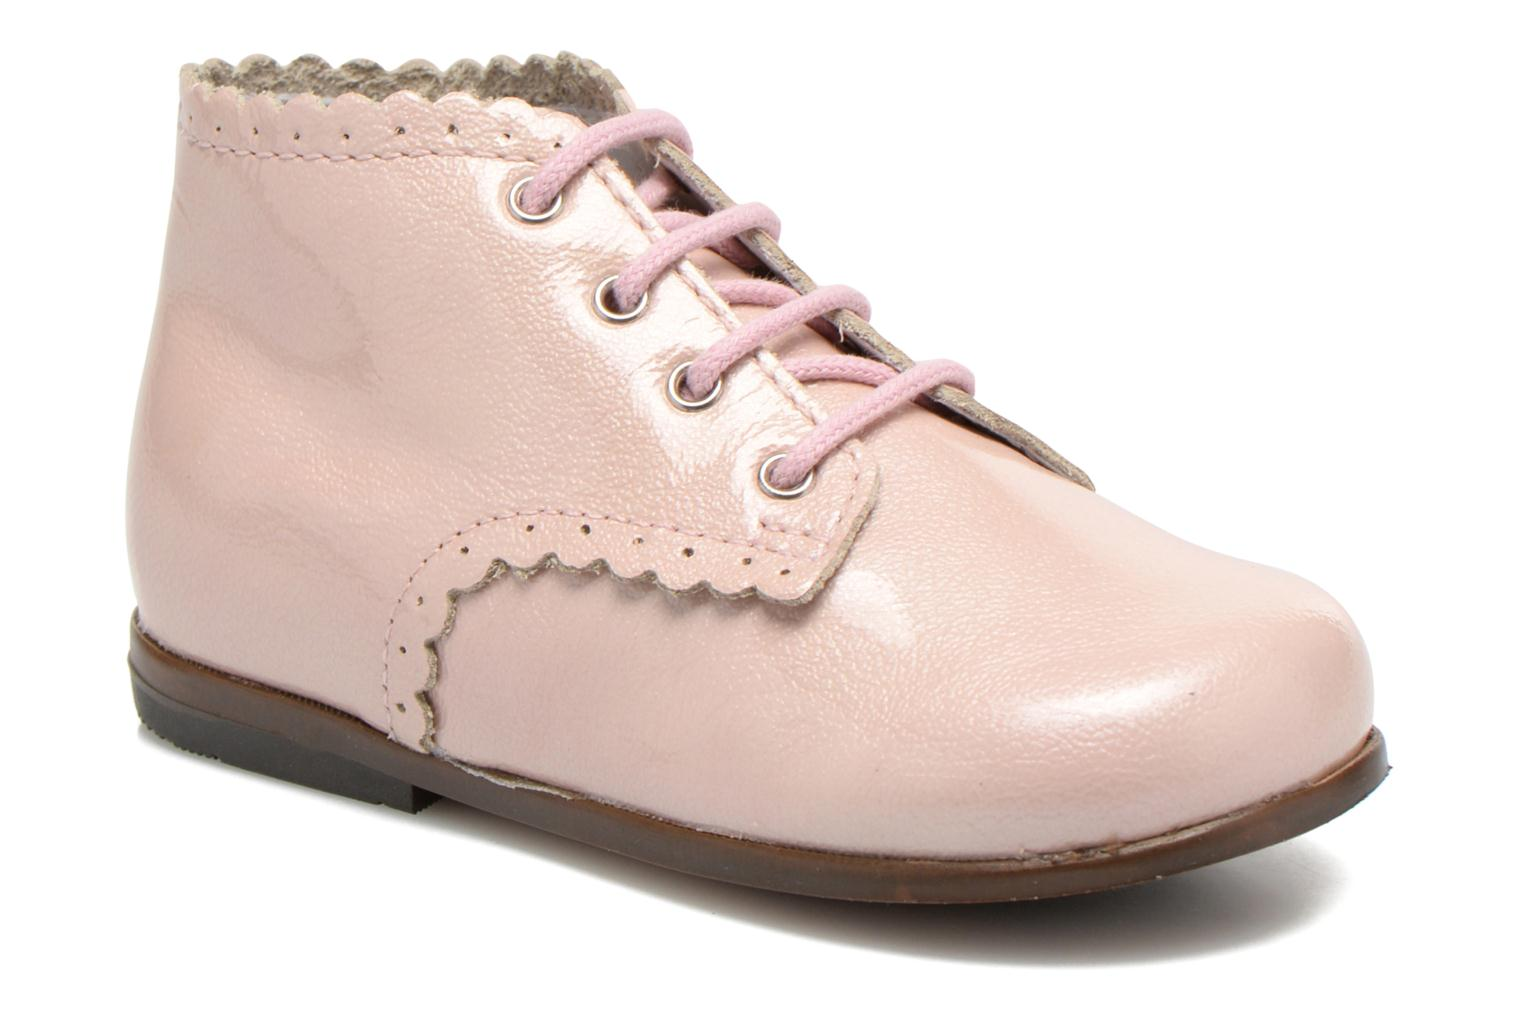 Chaussures à lacets Little Mary marron fille vdTLX2fH